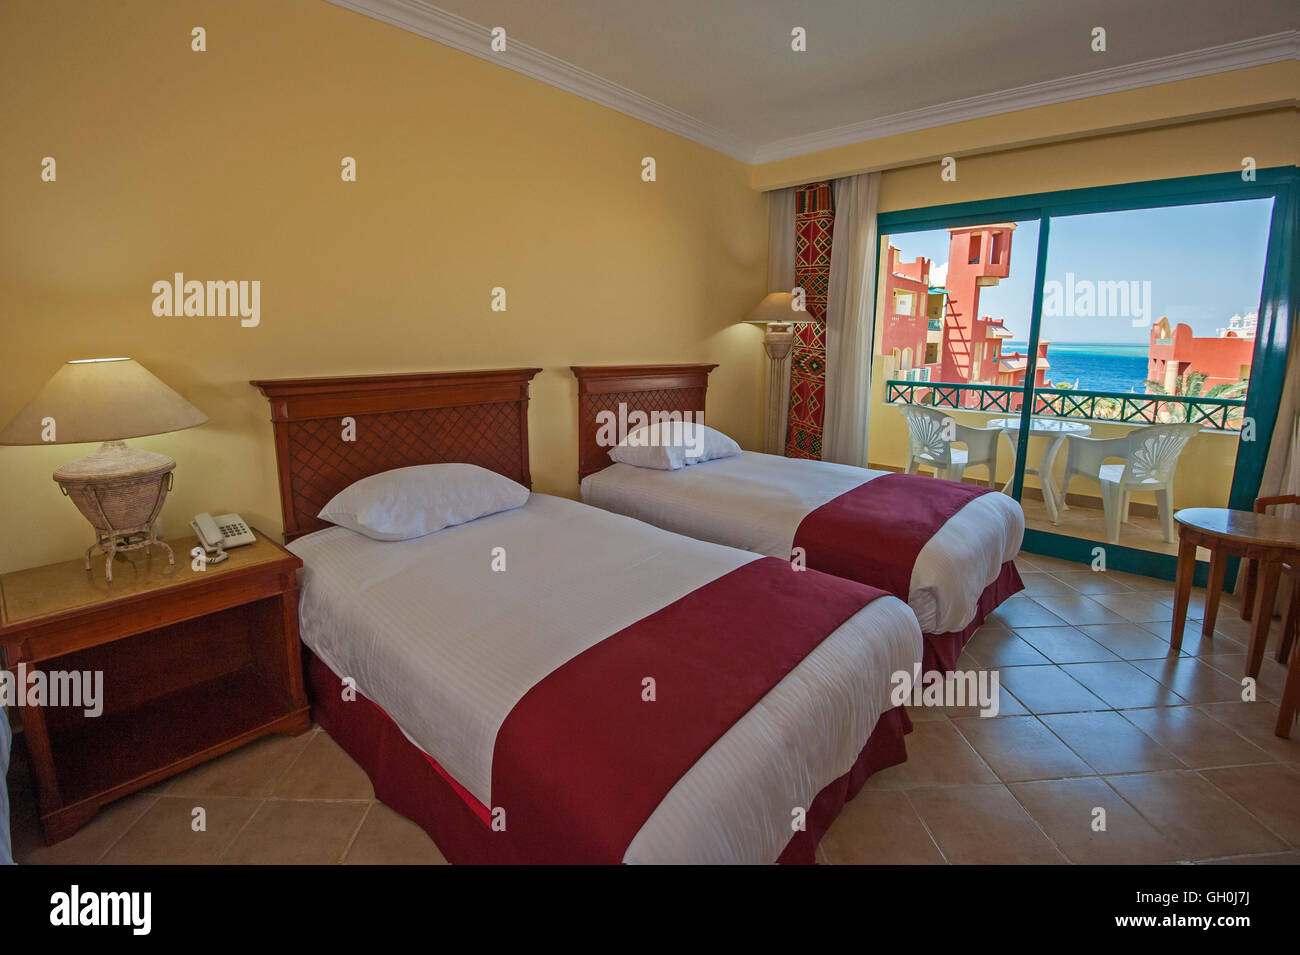 interior design of a luxury tropical hotel resort bedroom with balcony and sea view